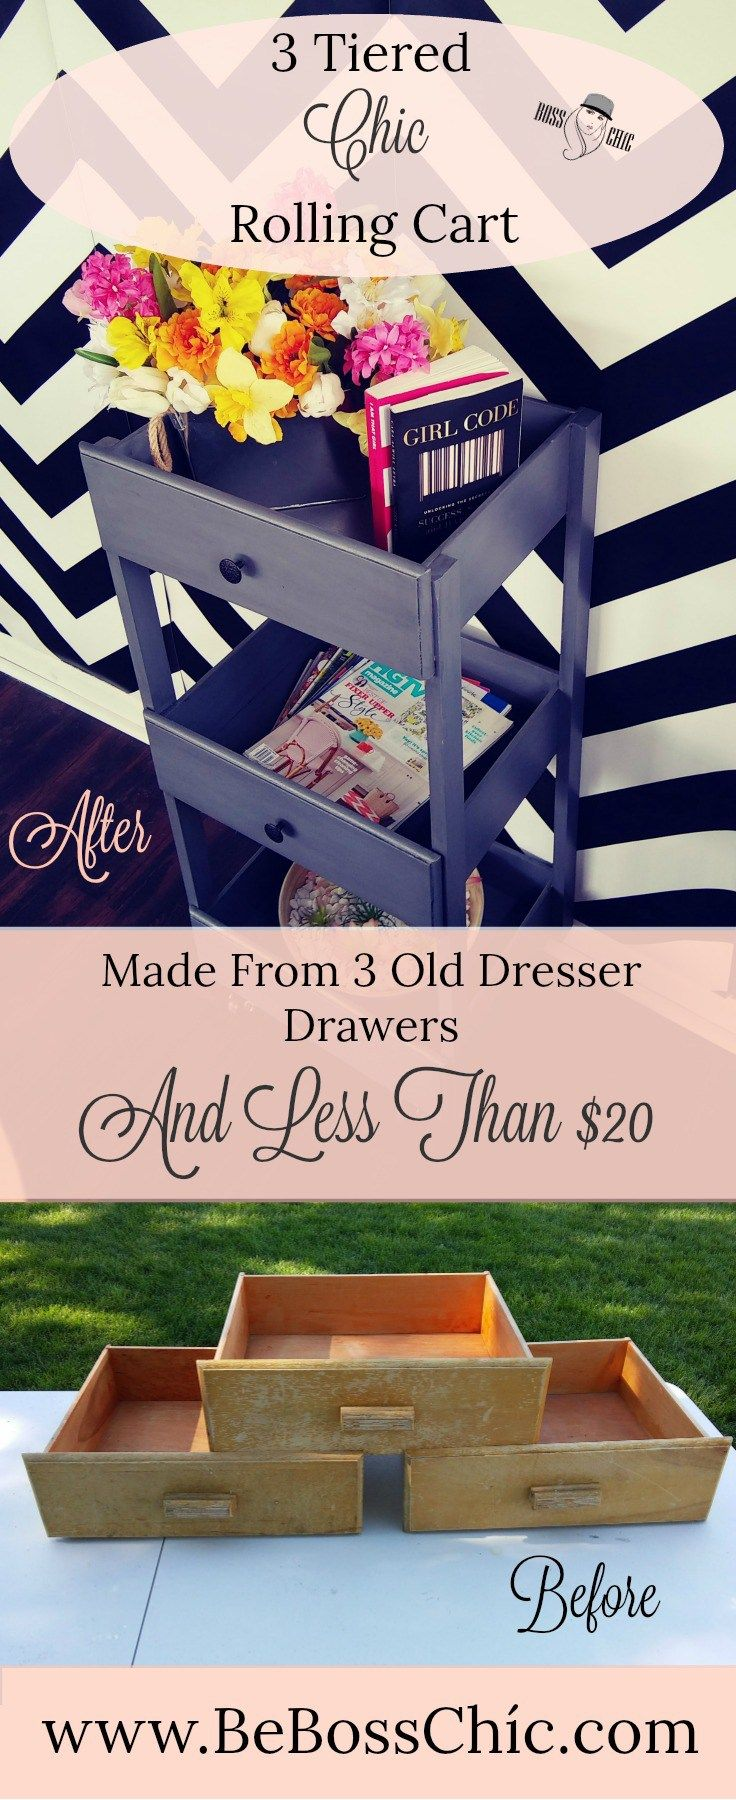 DIY 3 Tiered Chíc Rolling Cart/Side Table-Made From Dresser Drawers -   25 house diy decor ideas